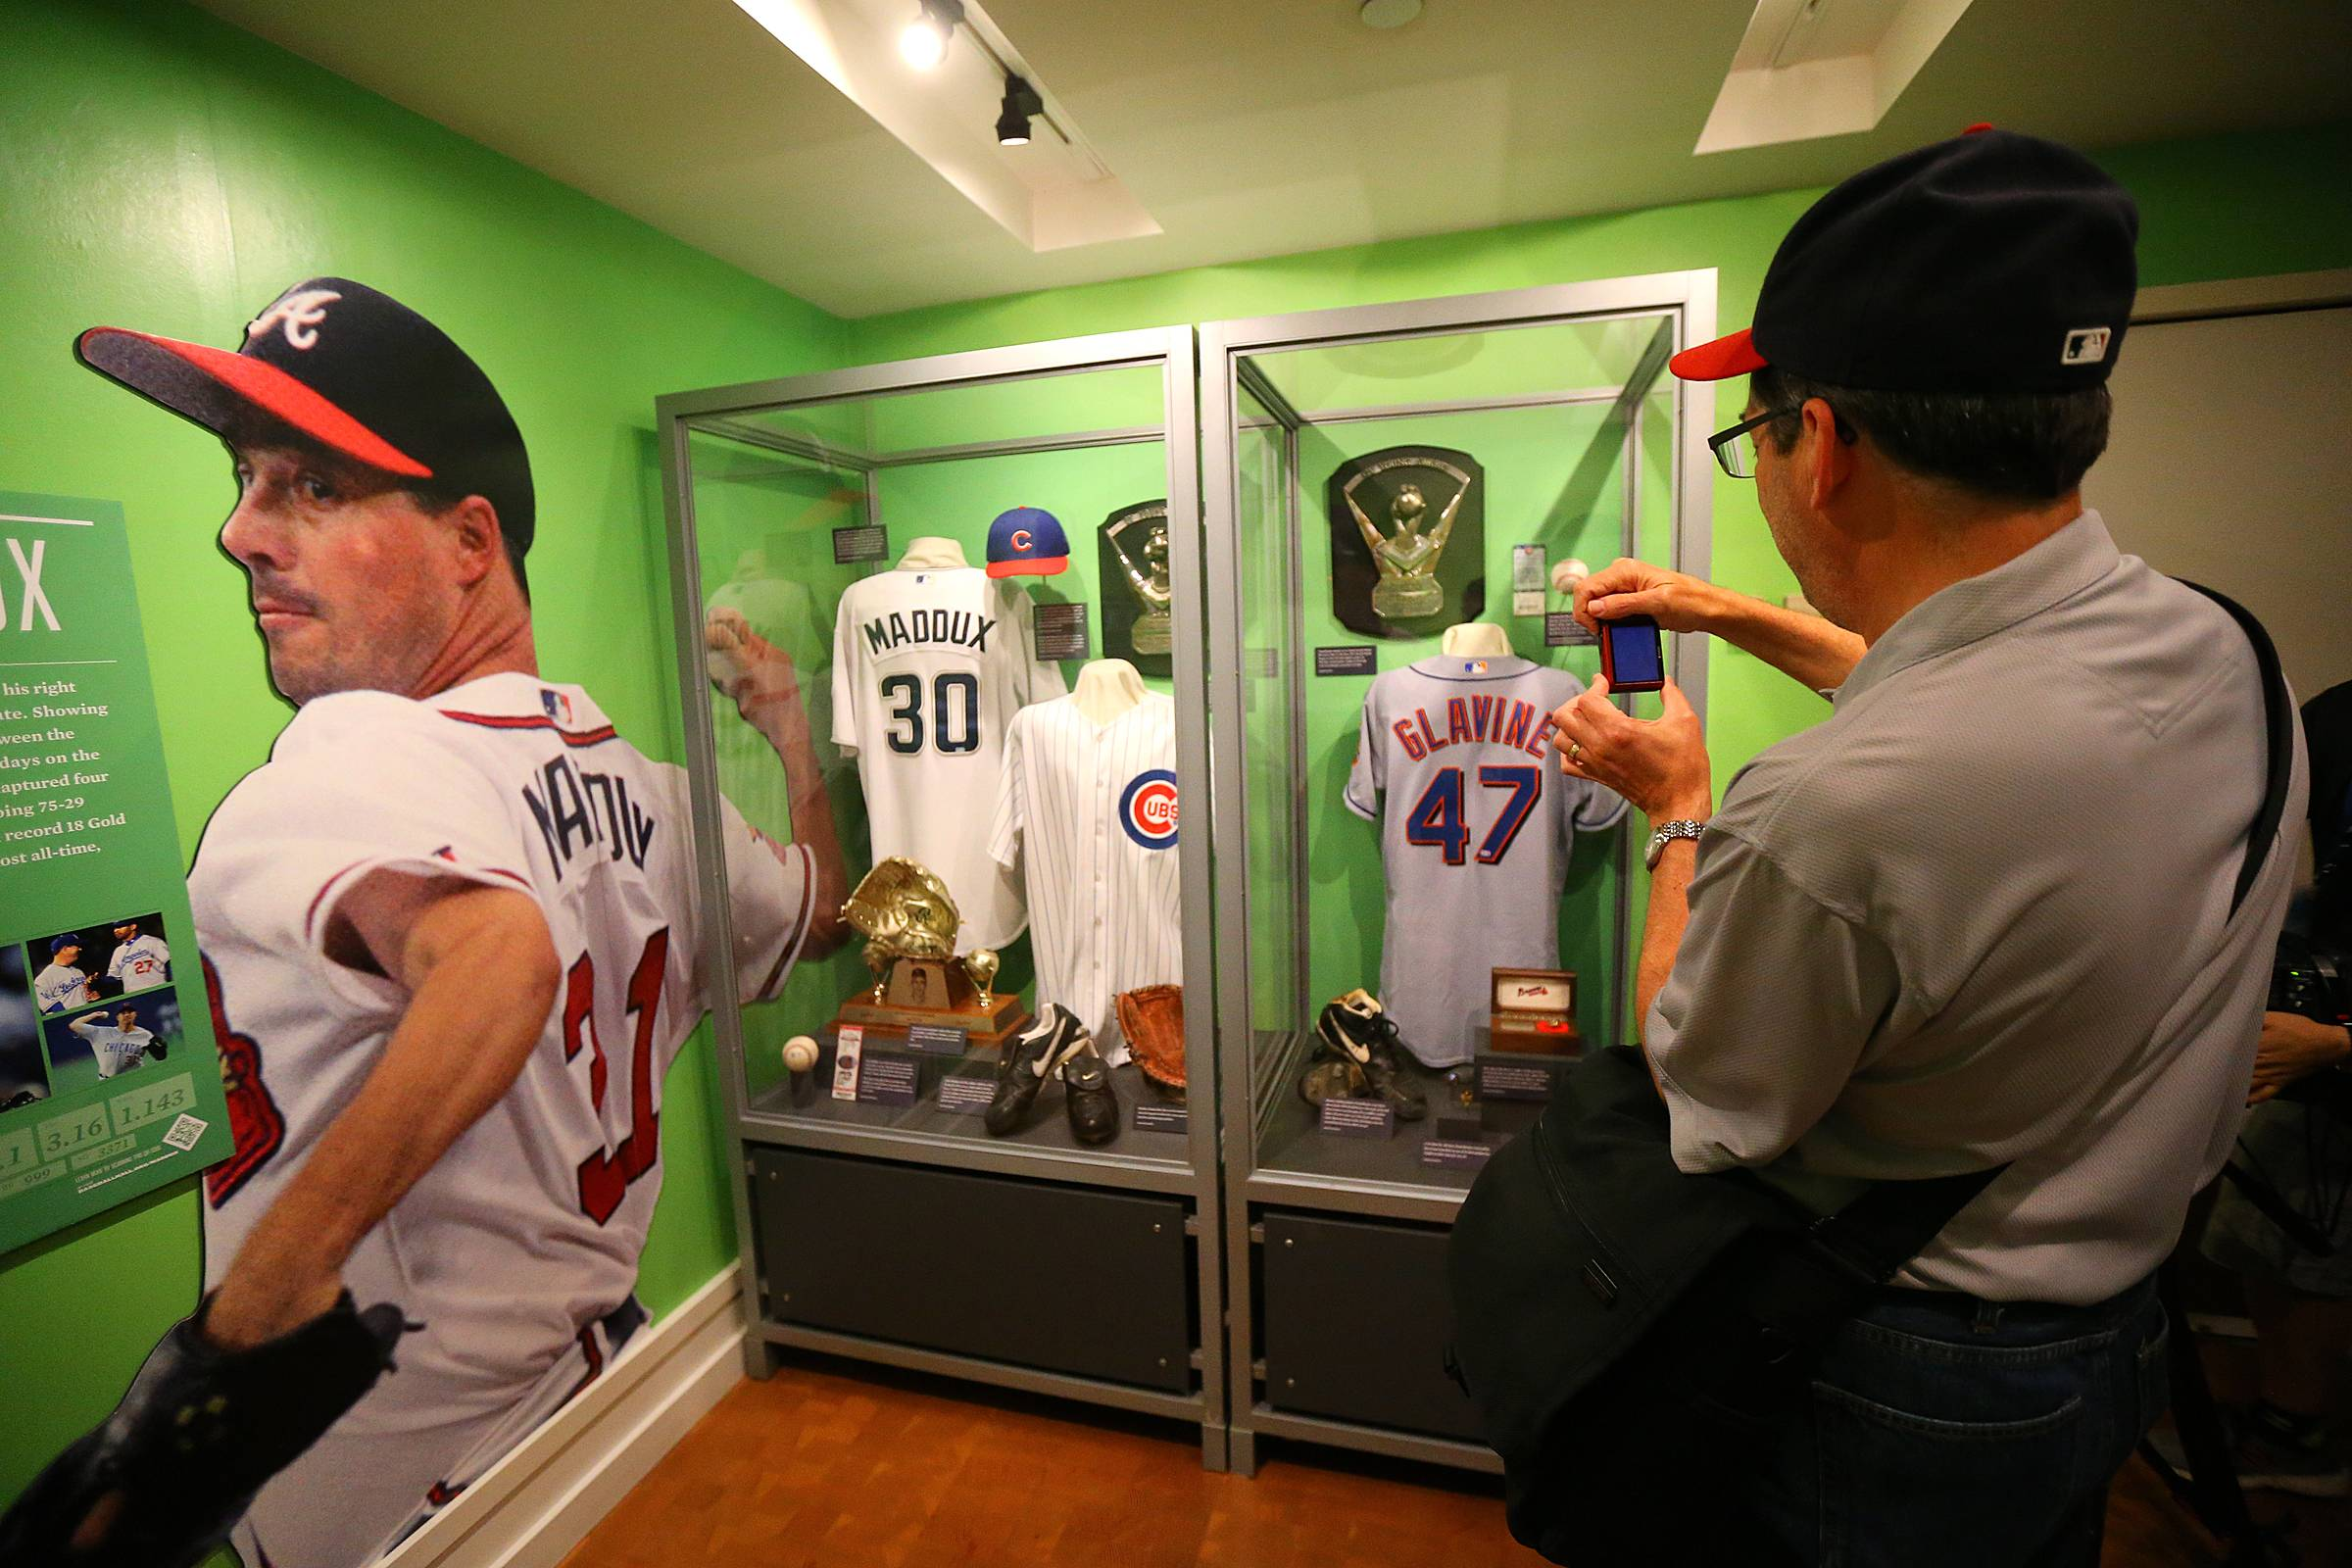 Atlanta Braves fan Mark Fuller snaps a photo of the Tom Glavine and Greg Maddux display at the National Baseball Hall of Fame and Museum on Friday, July 25, 2014, in Cooperstown, N.Y.